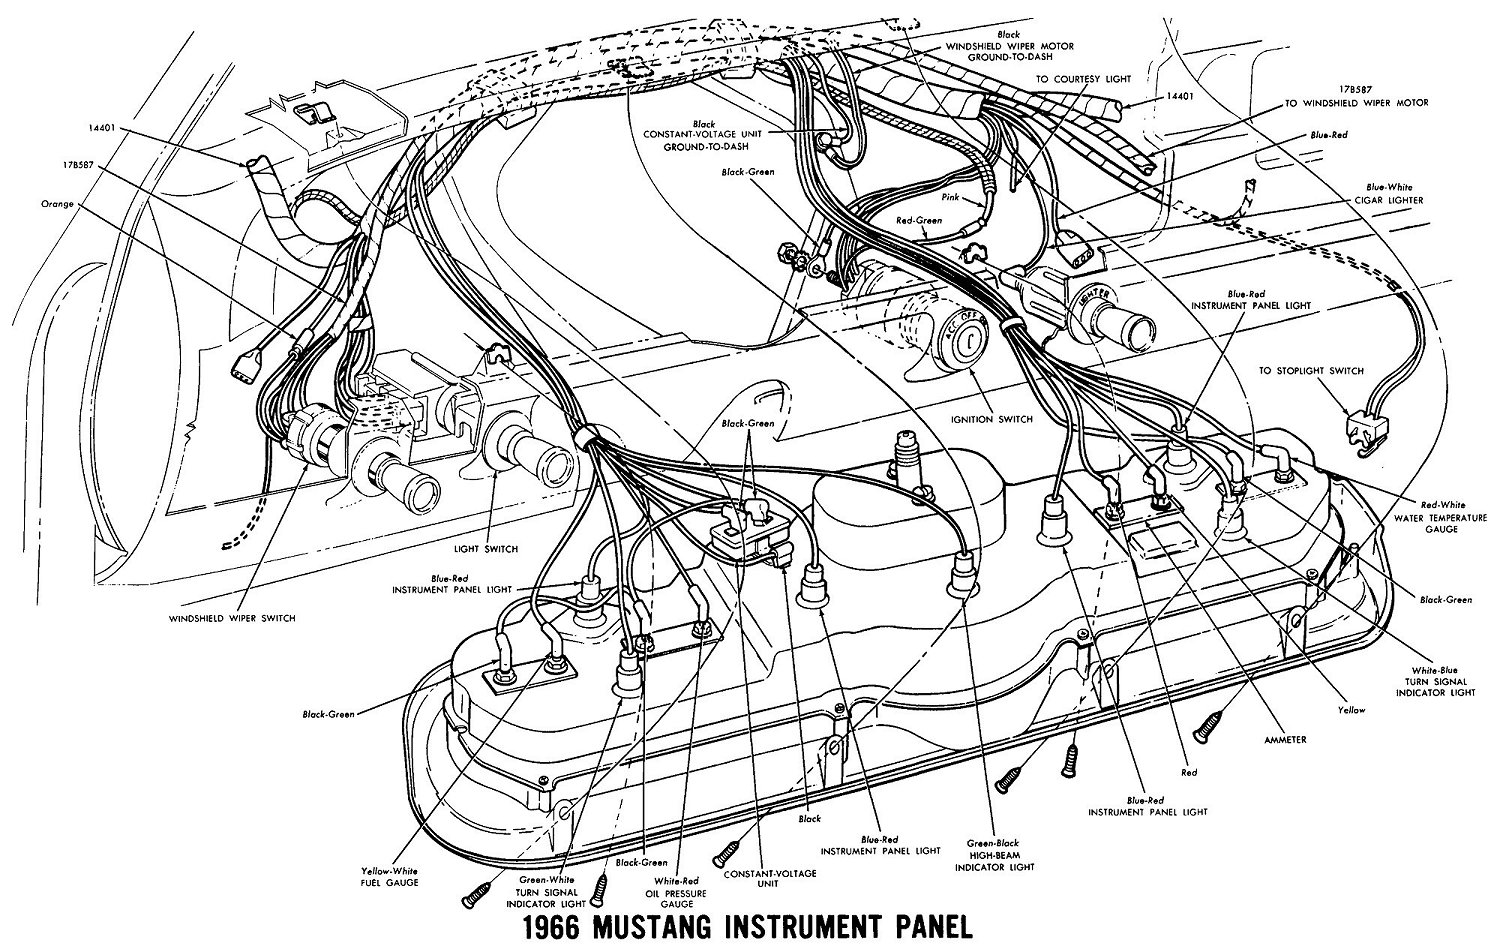 1969 mustang radio wiring diagram single coil humbucker vintage diagrams 66 instrument cluster detail